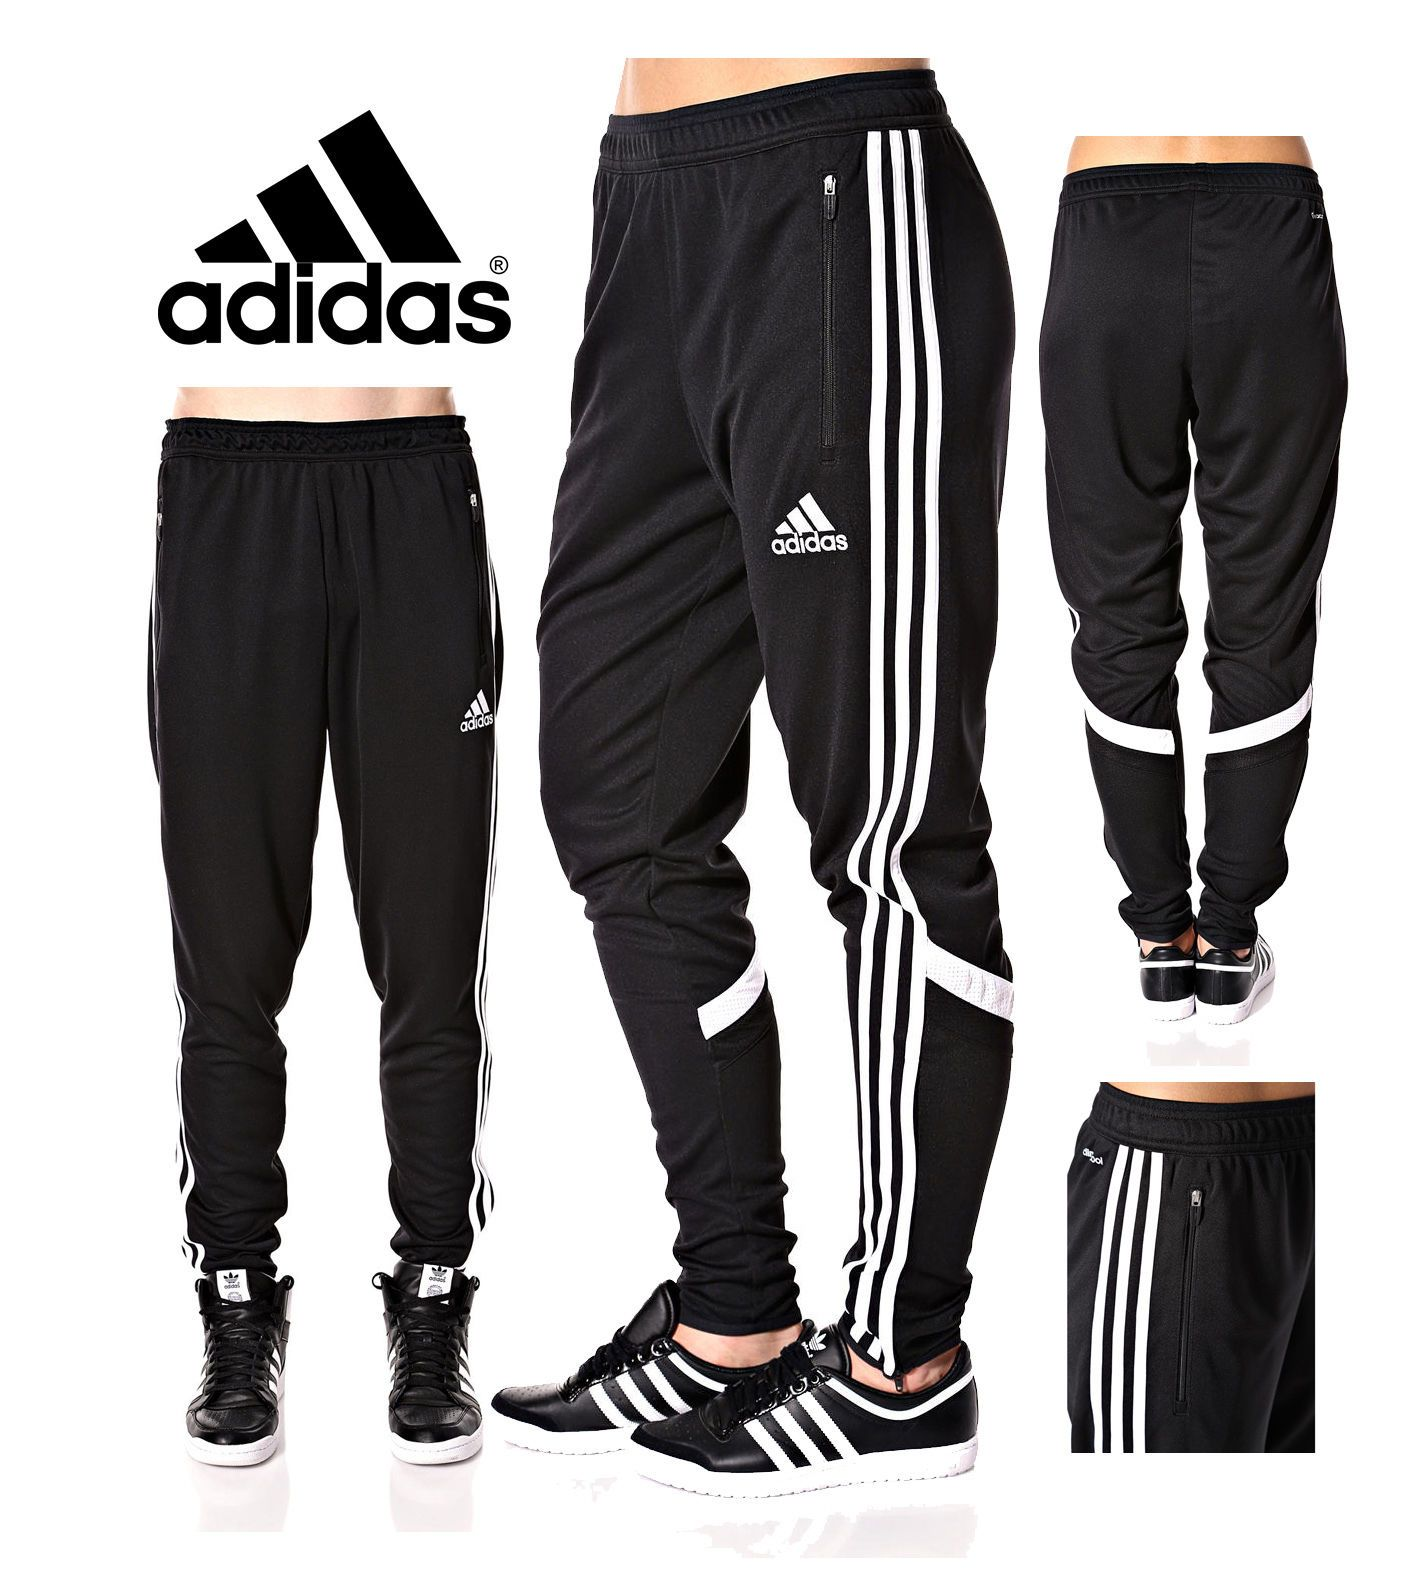 e6c1fd2b8230 Adidas Soccer Pants Condivo 14 Slim Fit Training ClimaCool Black Skinny  Athletic